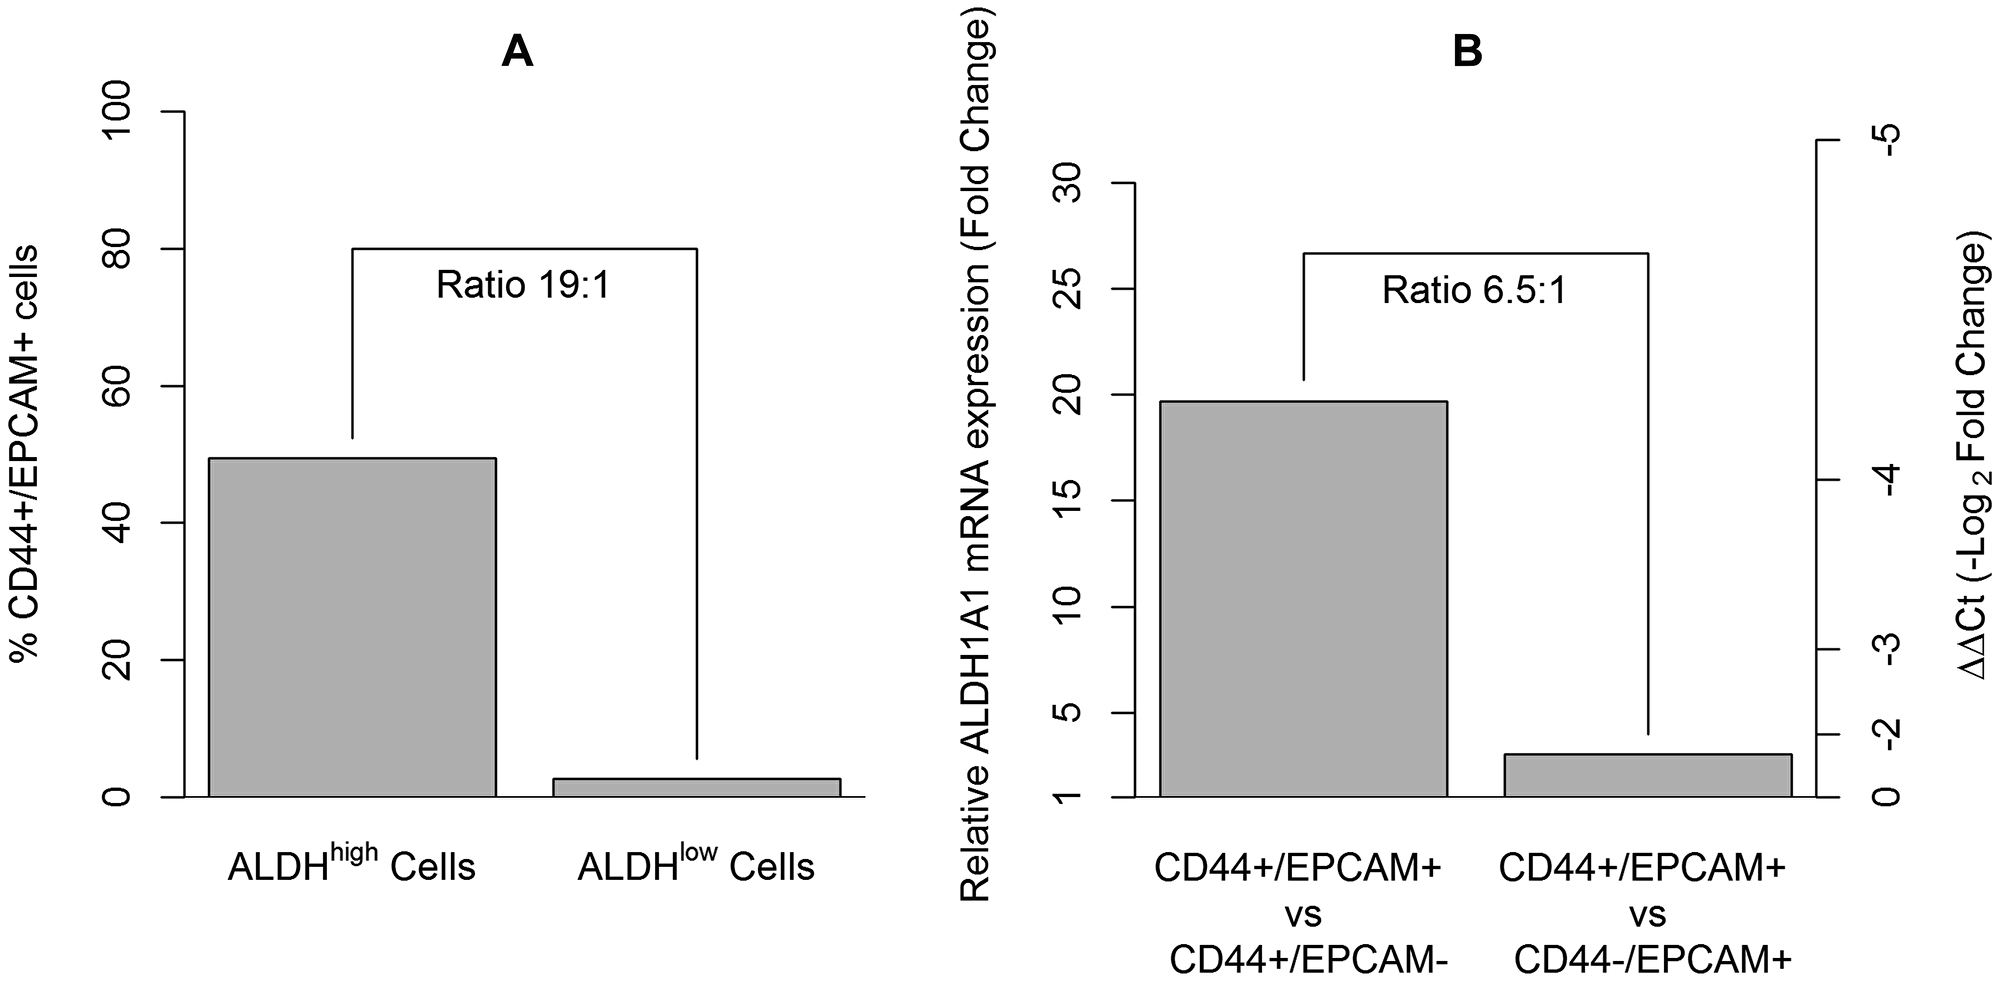 The assessment of CD44+/EPCAM+ cells in ALDHhigh sorted cells and their enrichment for the ALDH1A1 cancer stem cell gene.